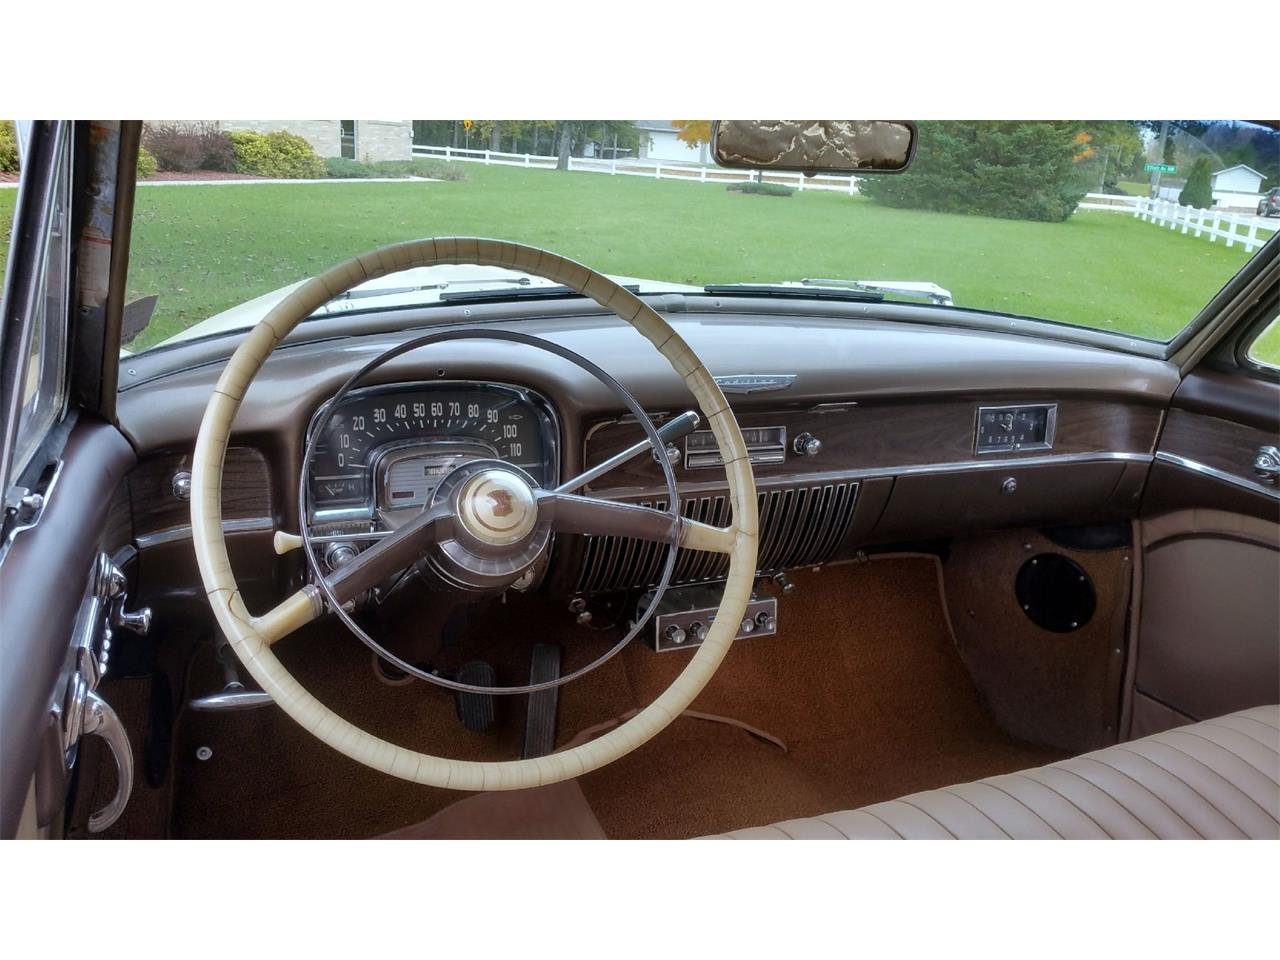 1951 Cadillac Coupe Deville For Sale Cc 1031412 Large Picture Of 1995000 Offered By Silver Creek Classics M3uc